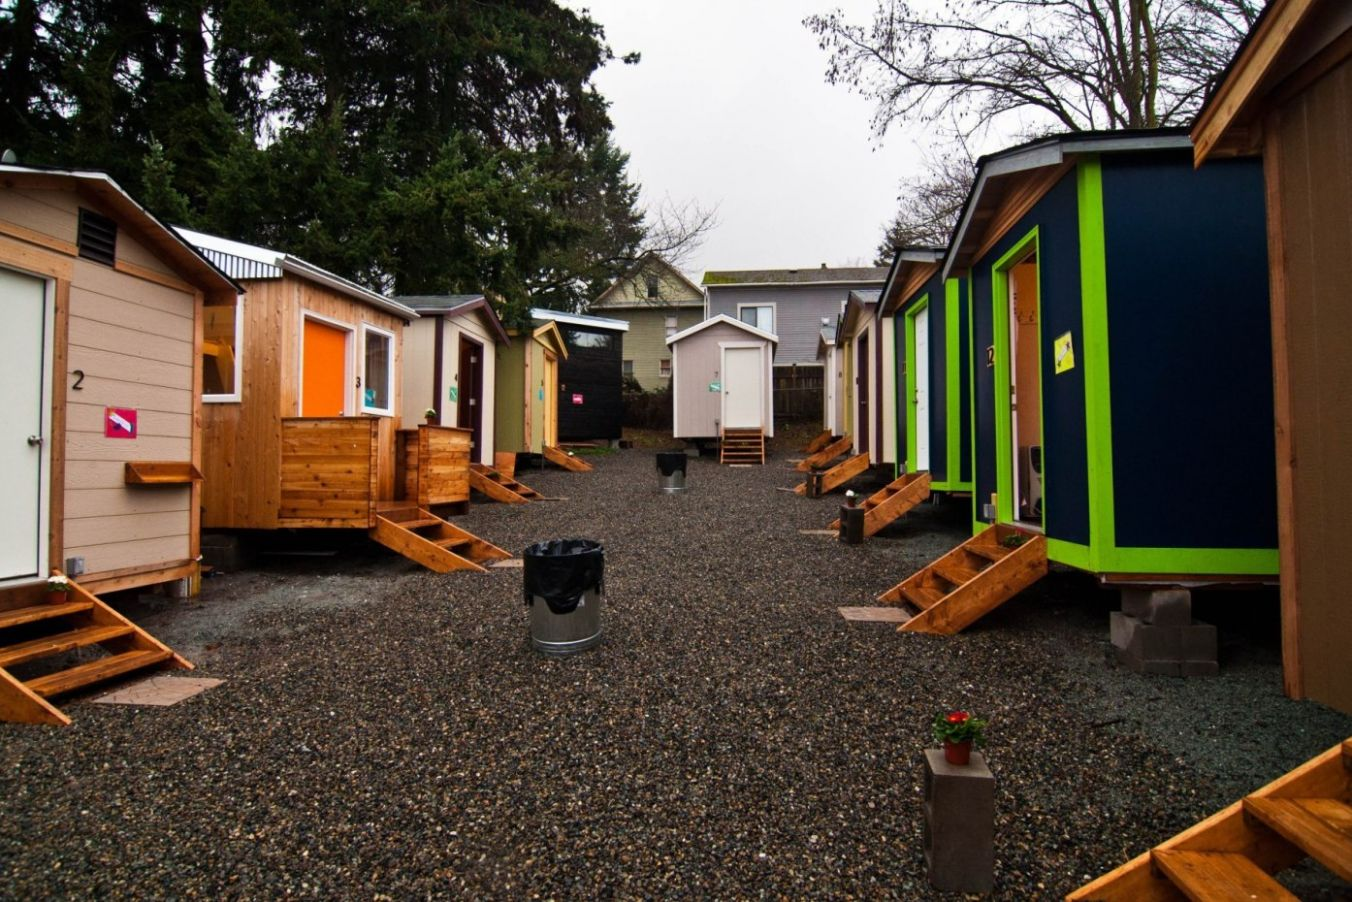 Seattle will shutter tiny house village after resident lockout ..